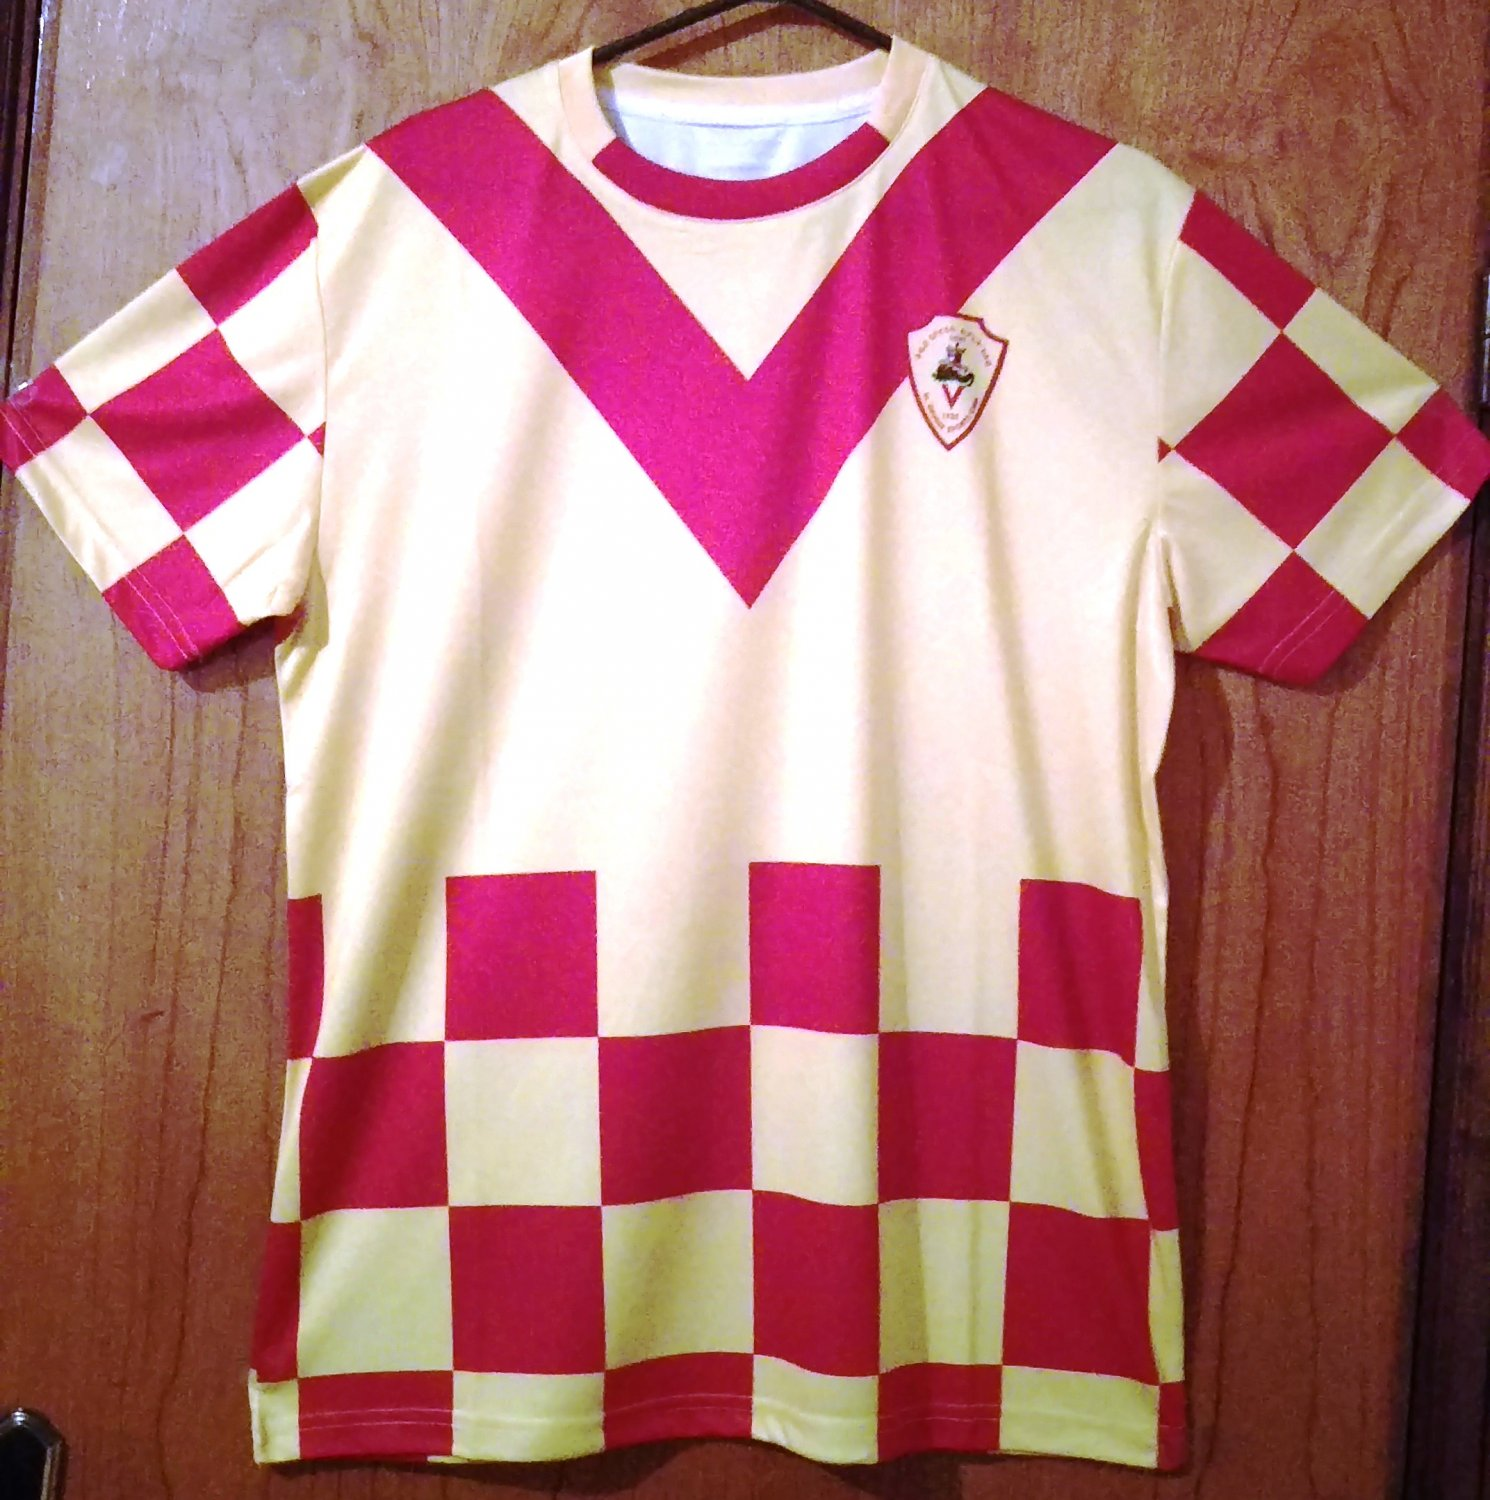 The new Ethiopian St George soccer  team football Jersey limited time 30% Discount. Free shipping